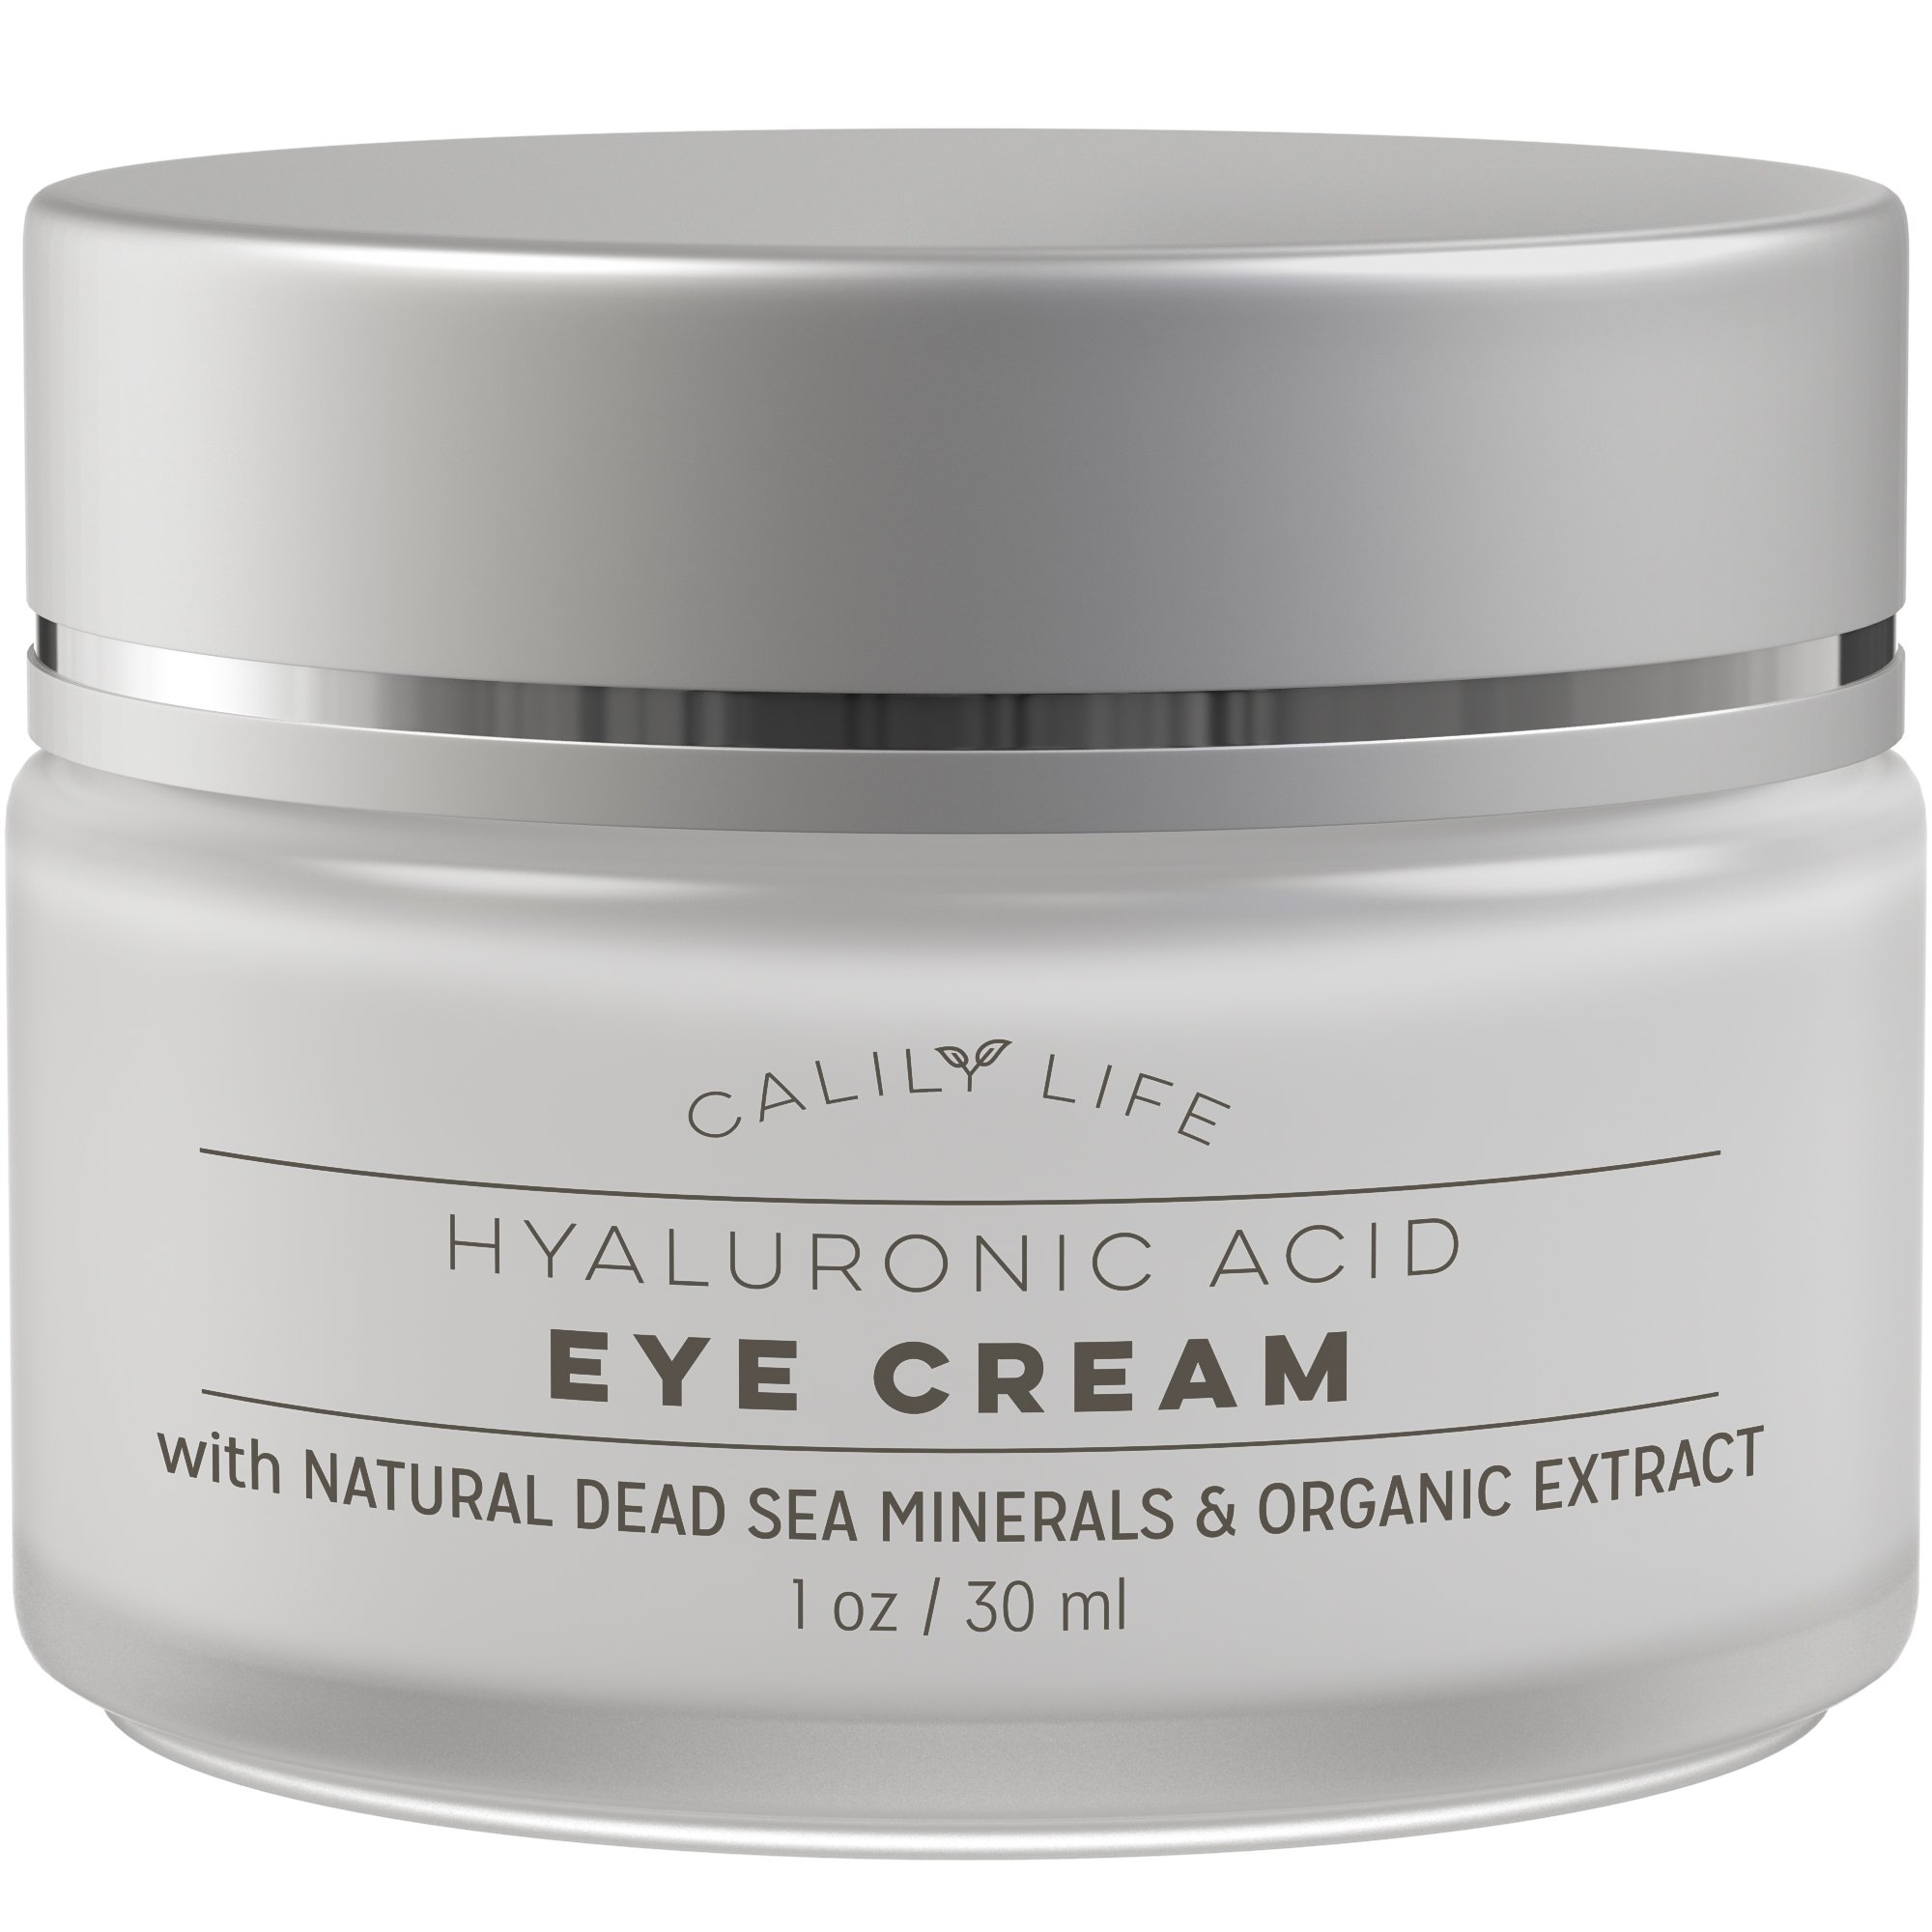 Calily Life Hyaluronic Acid Eye Cream with Dead Sea Minerals, 1 Oz.–Deeply Hydrates, Nourishes Skin & Fights Wrinkles - Minimizes Fine Lines, Reduces Puffiness & Dark Circles, Locks Natural Moisture